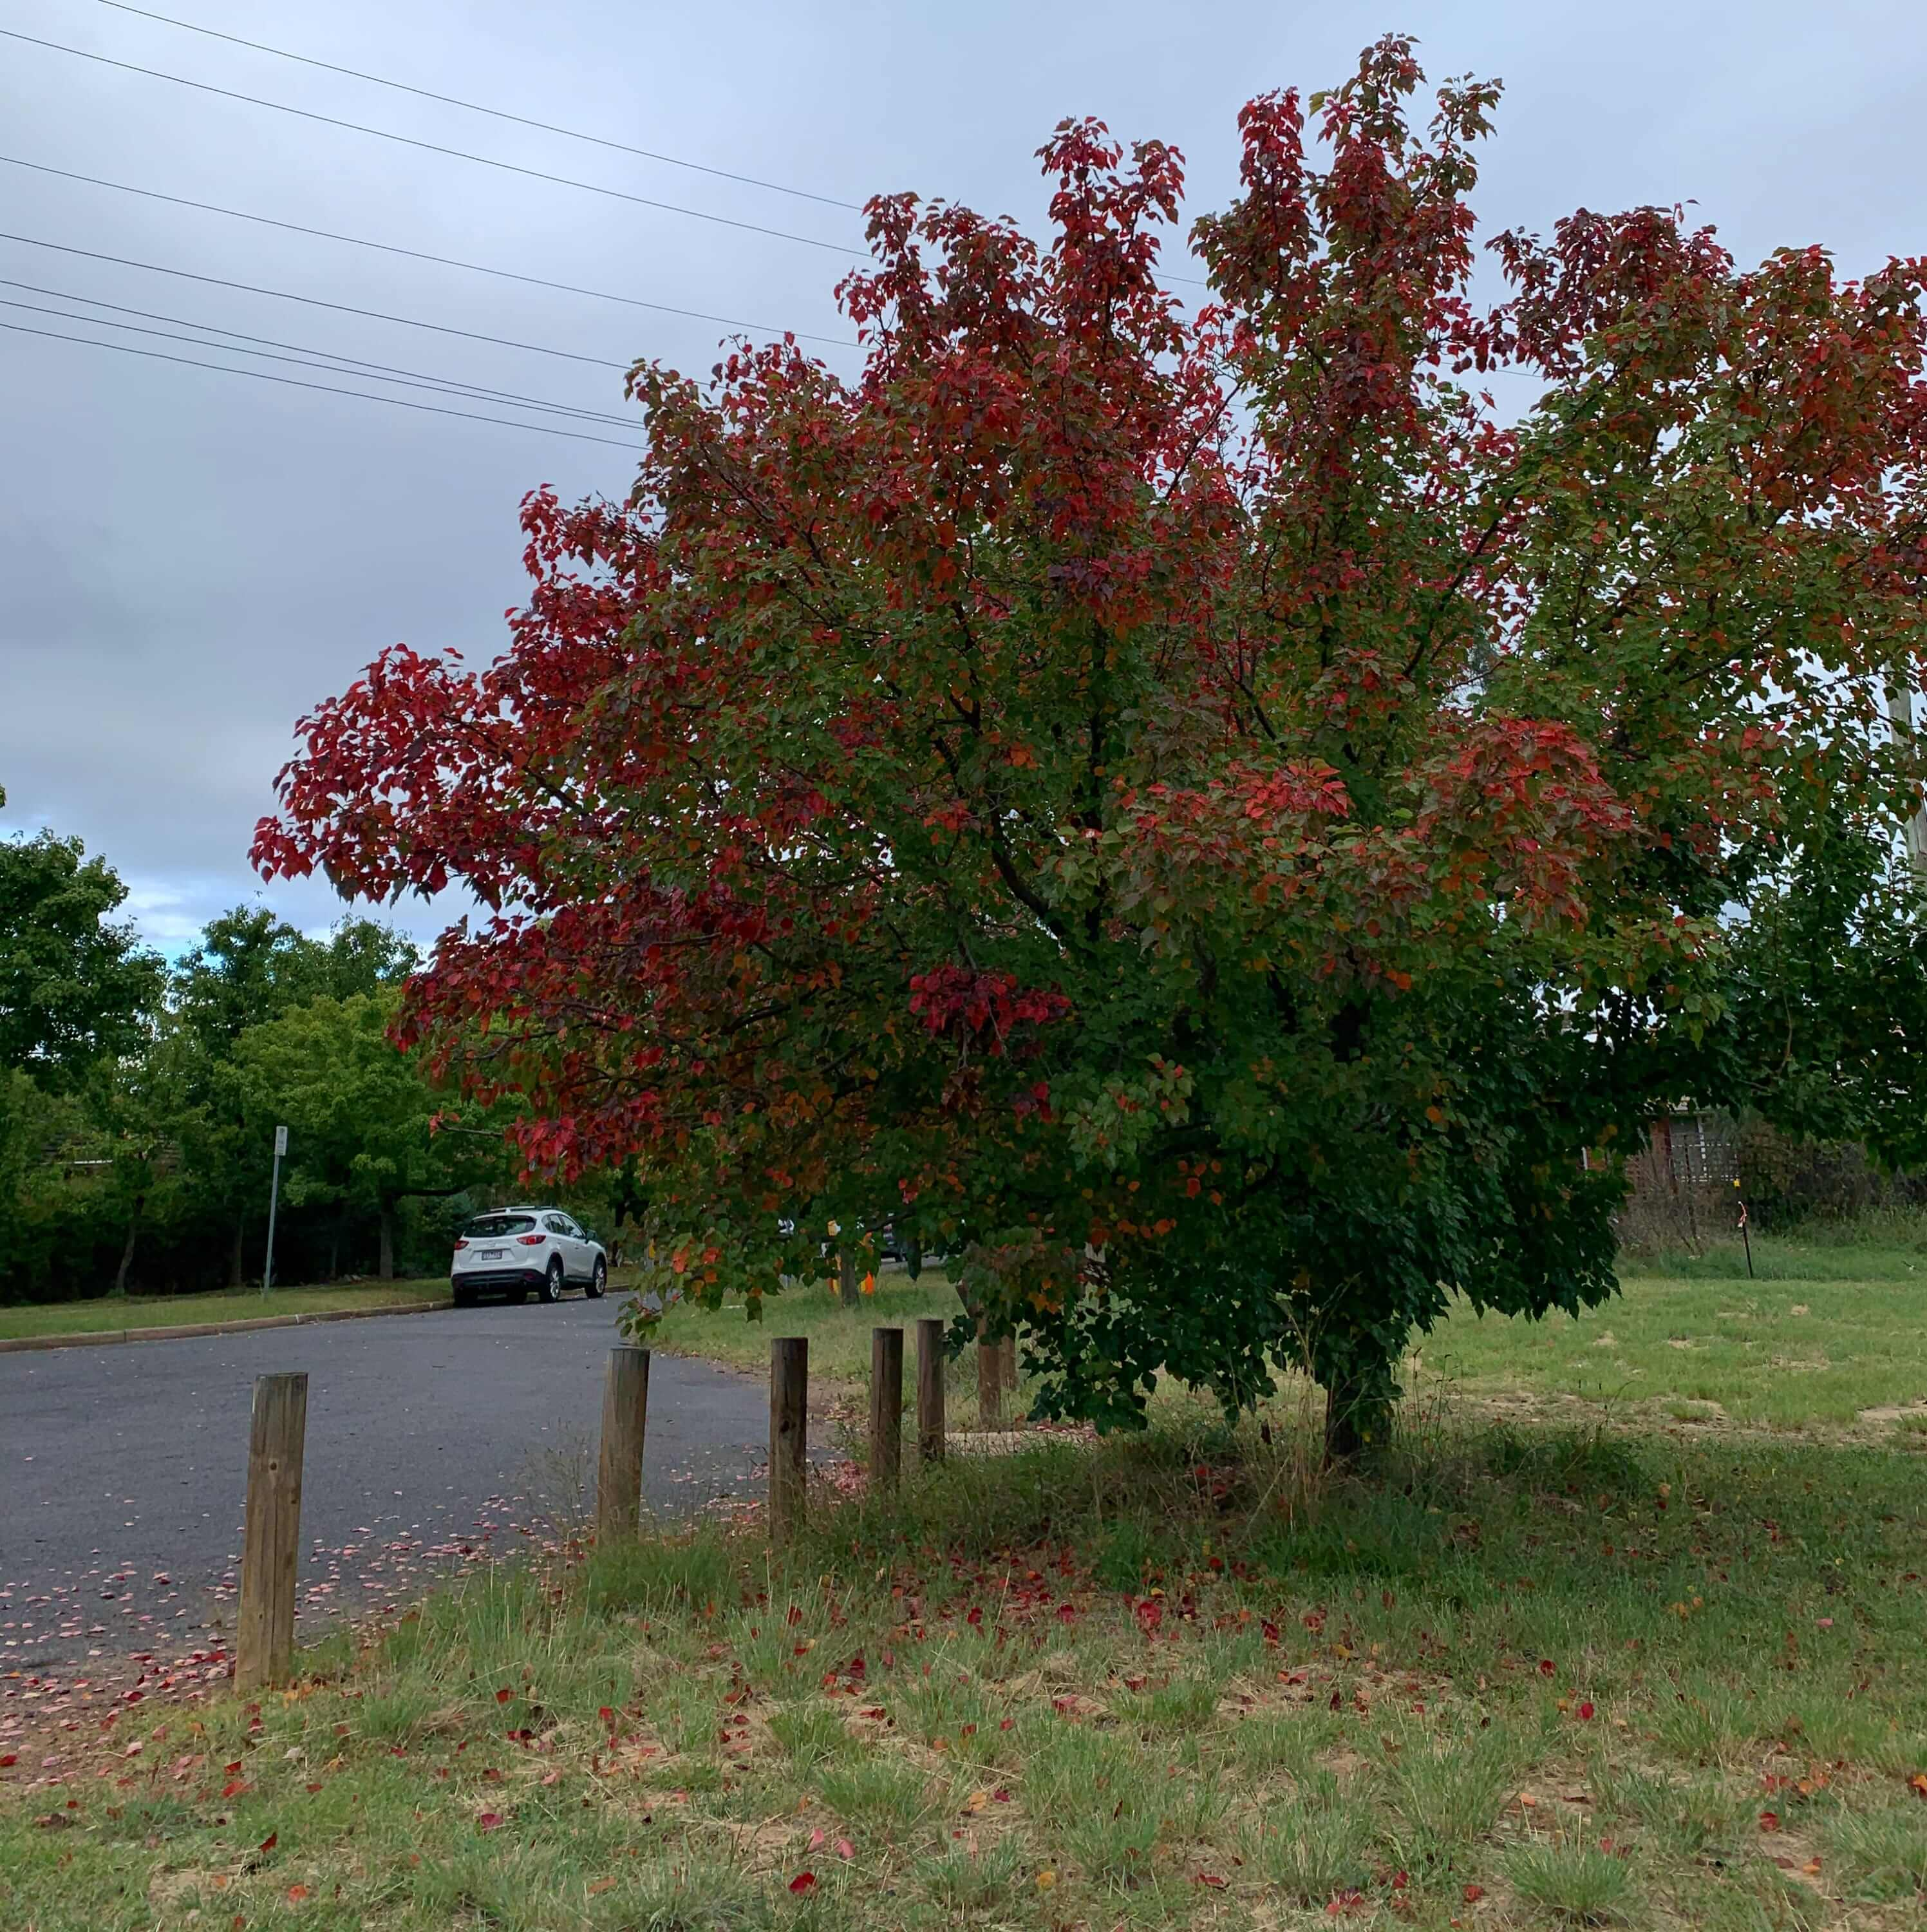 a tree with reddish leaves starting to appear, in the beginning of autumn, Canberra